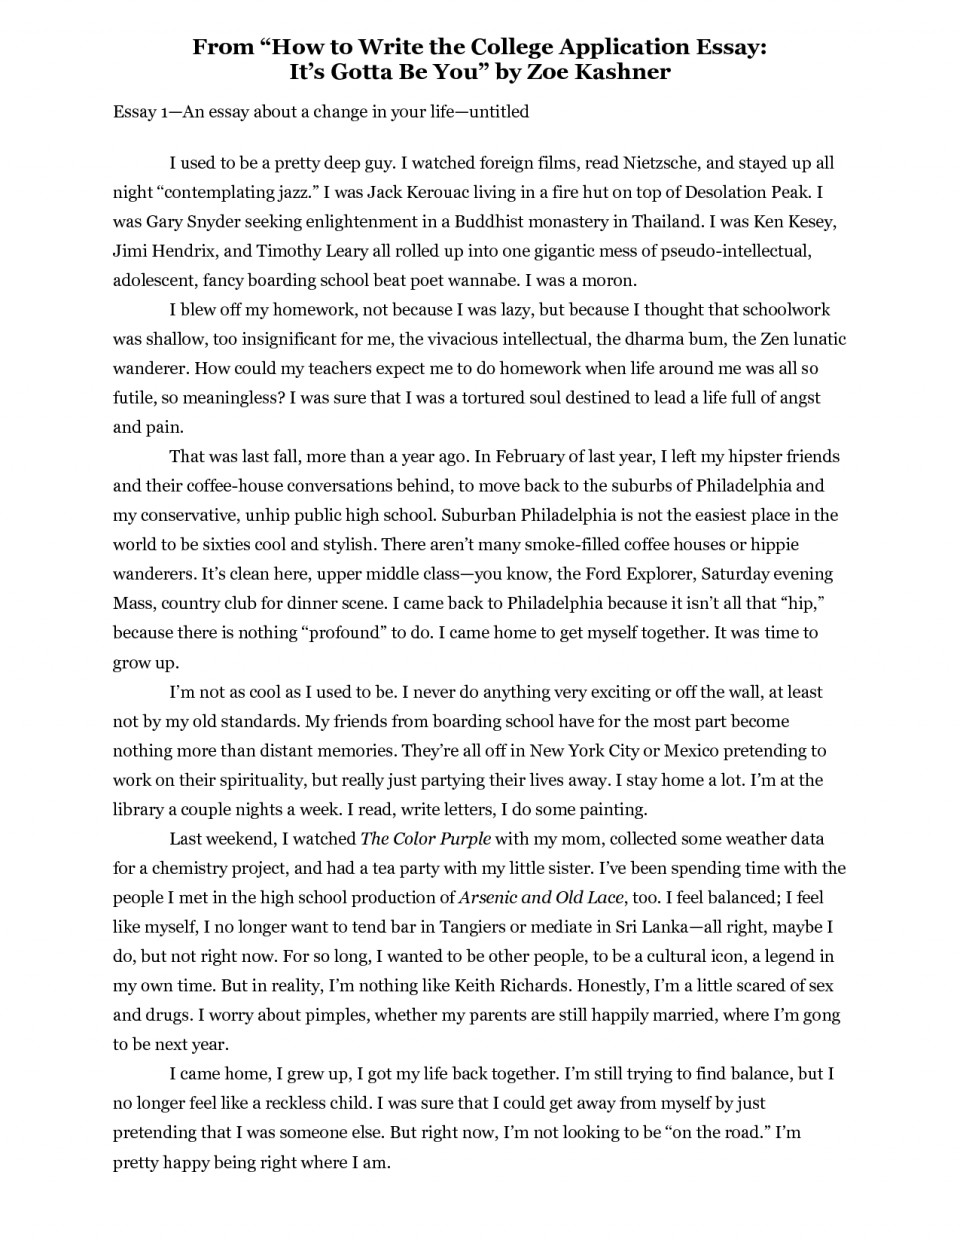 002 Essay About Yourself Oyt5kbffja Top Introduction Tell Me Pdf How To Write A Personal For College 960